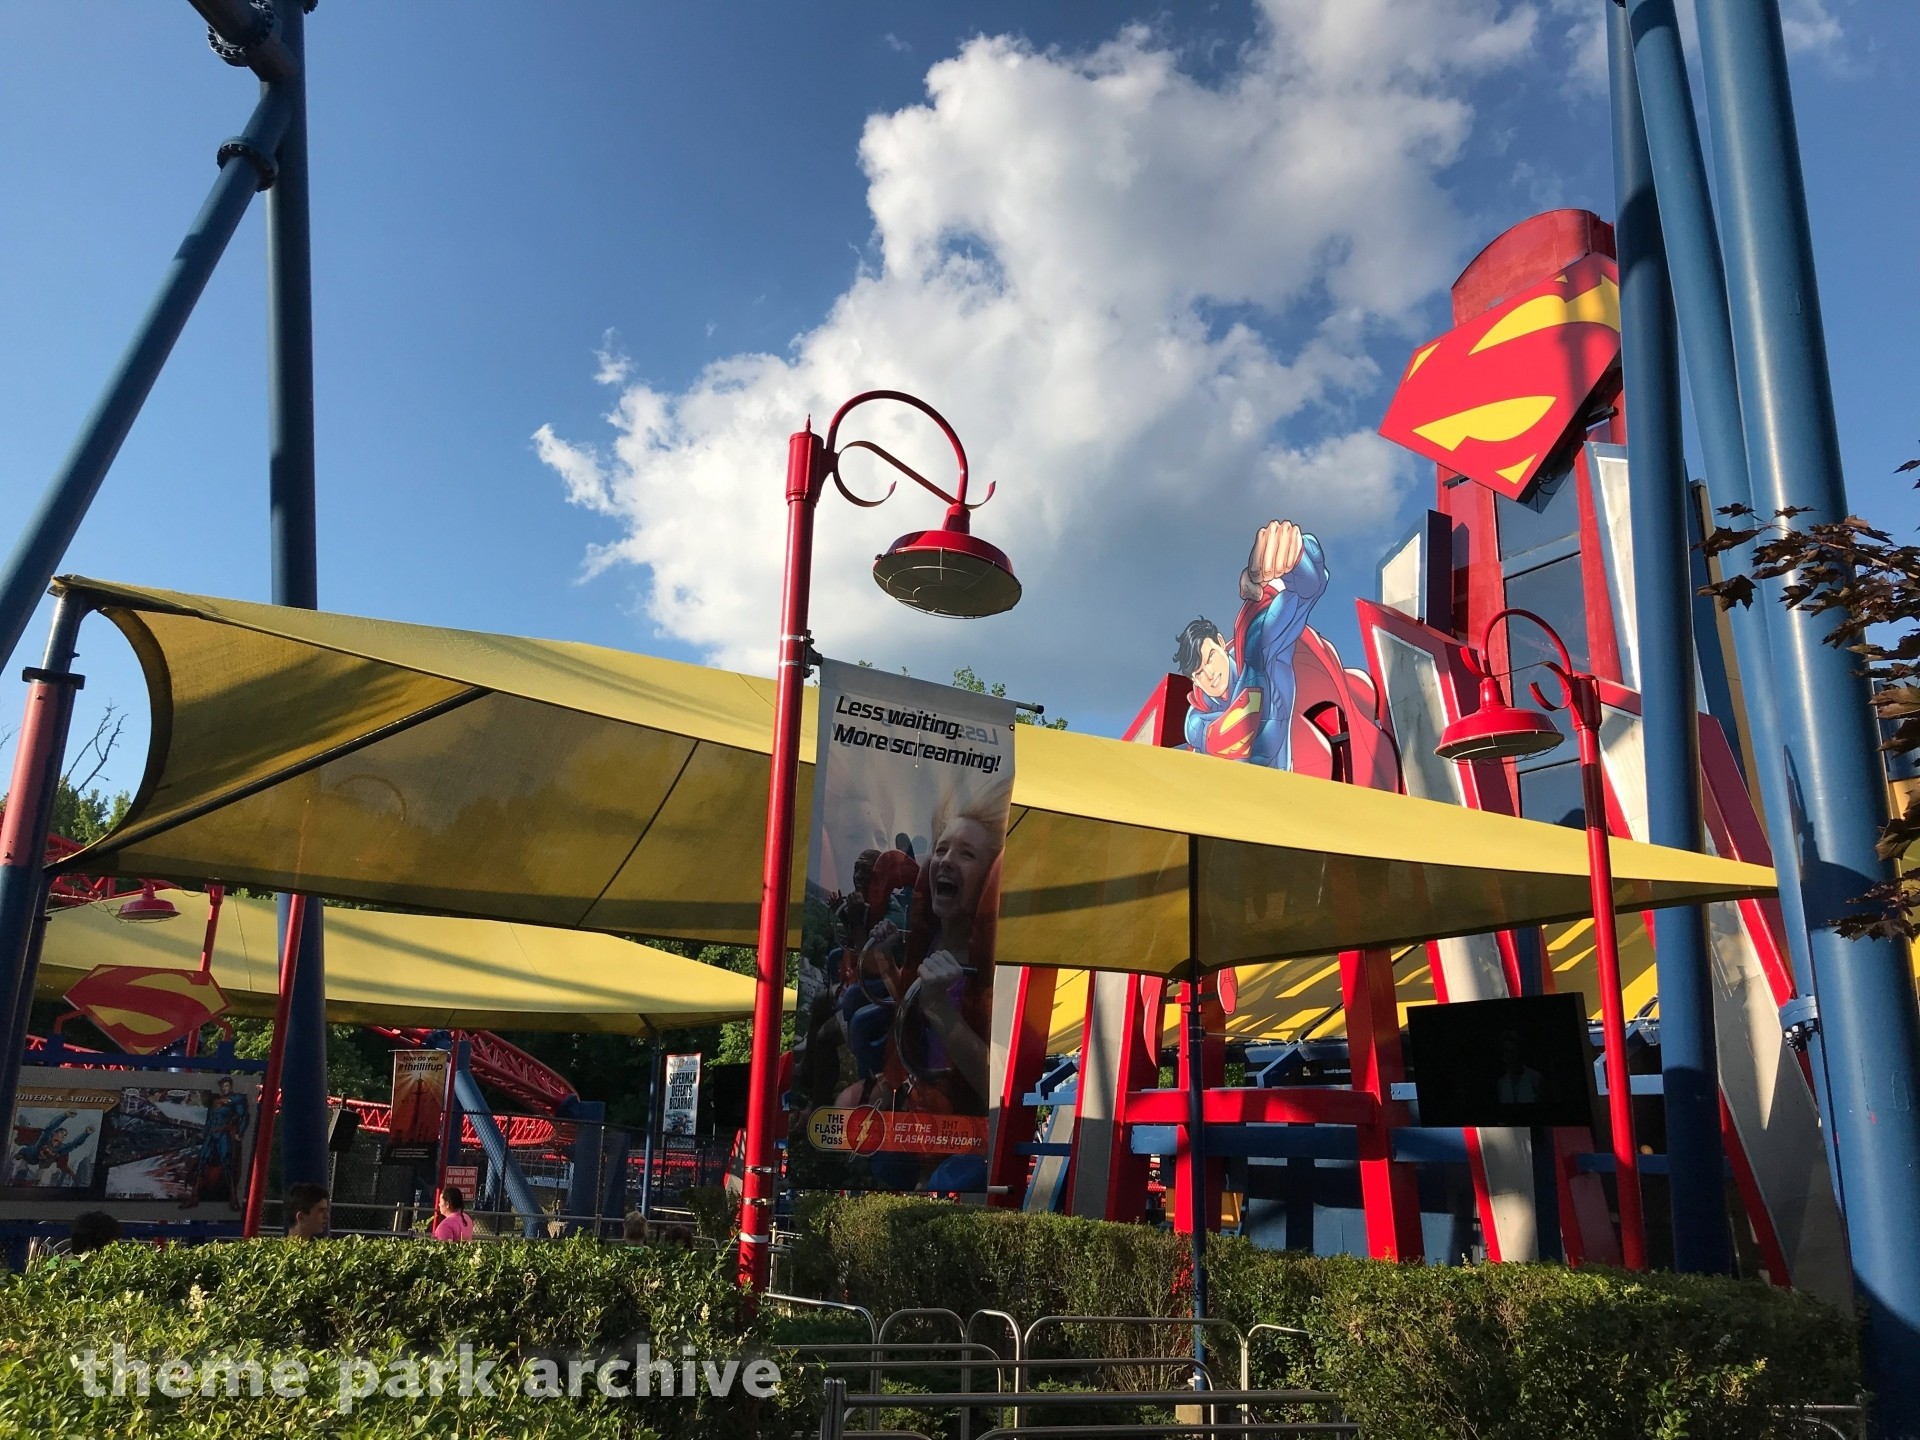 Superman The Ride at Six Flags New England | Theme Park Archive